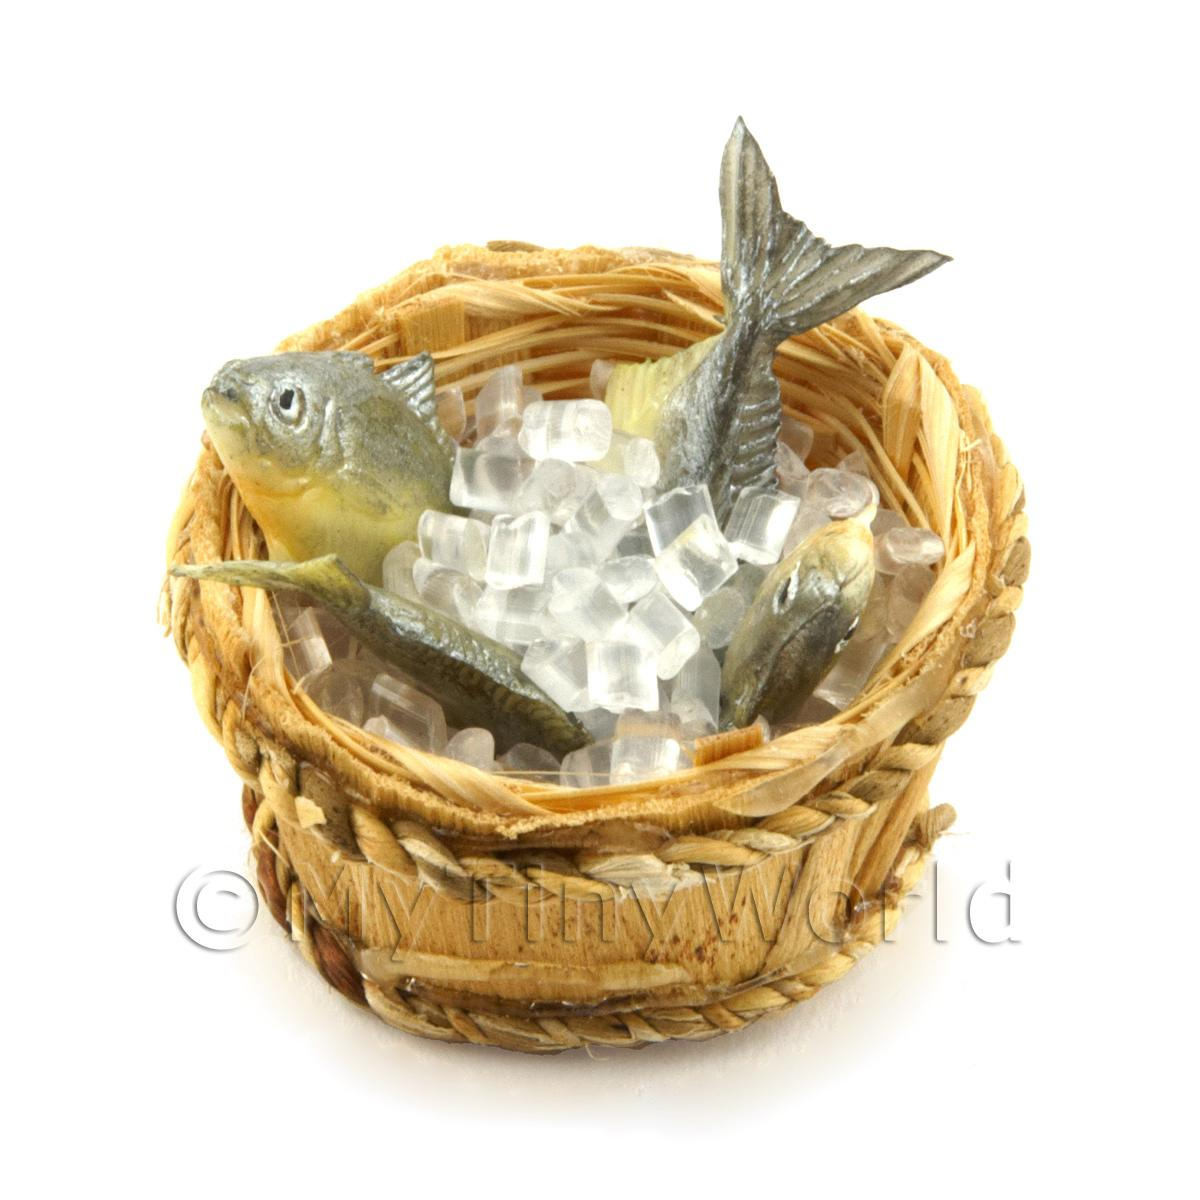 4 Dolls House Miniature Fish With Ice In A Basket (FSHB01)